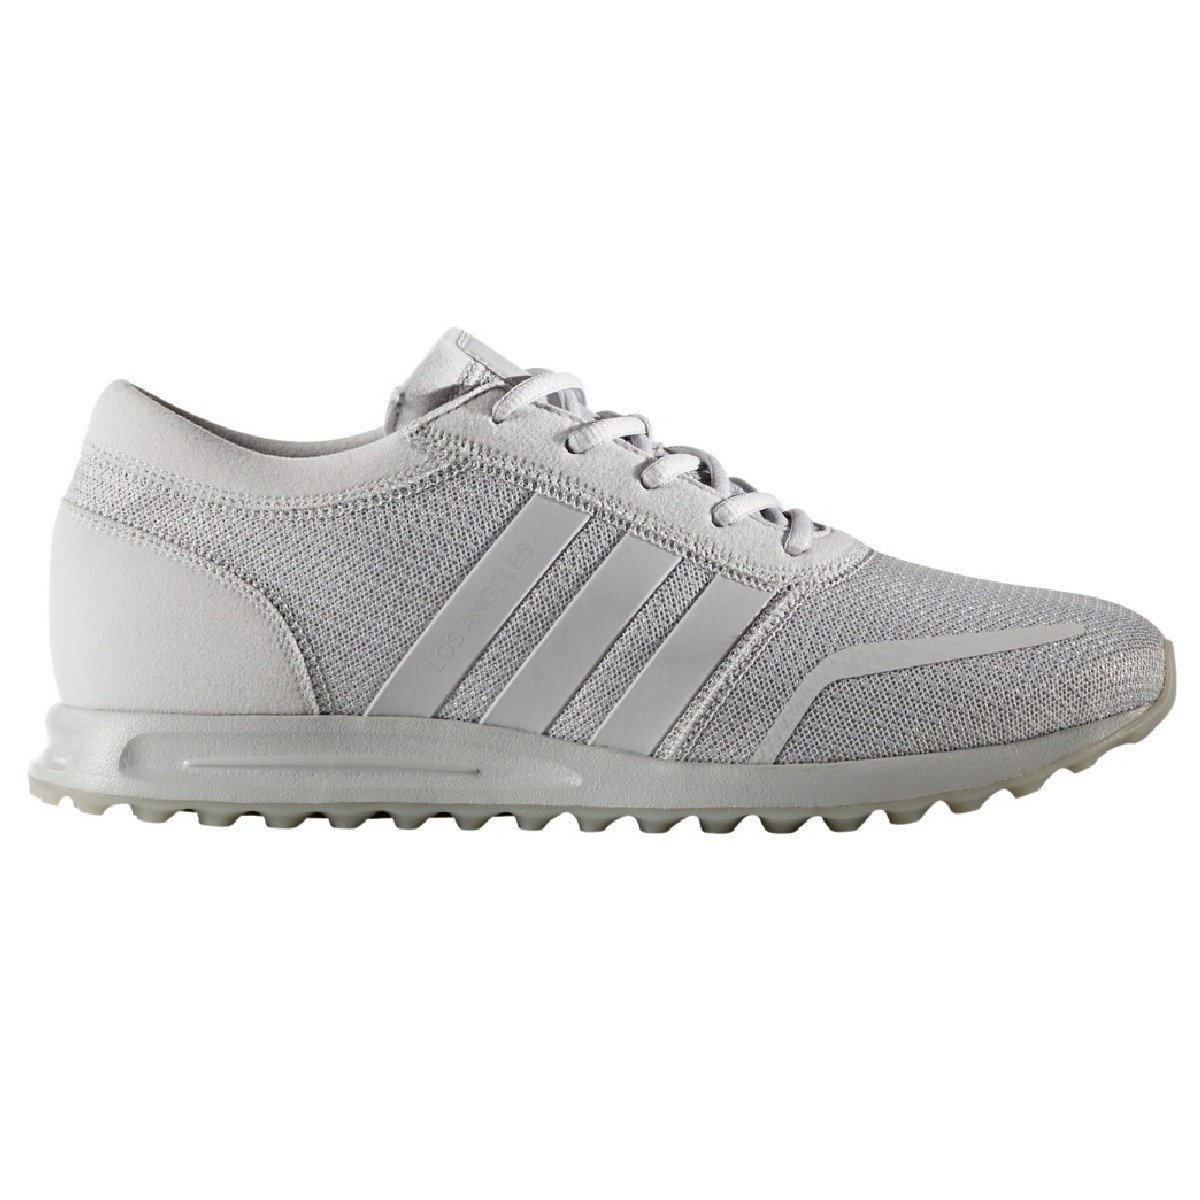 competitive price offer discounts free shipping Adidas Los Angeles Shoes - BB1123